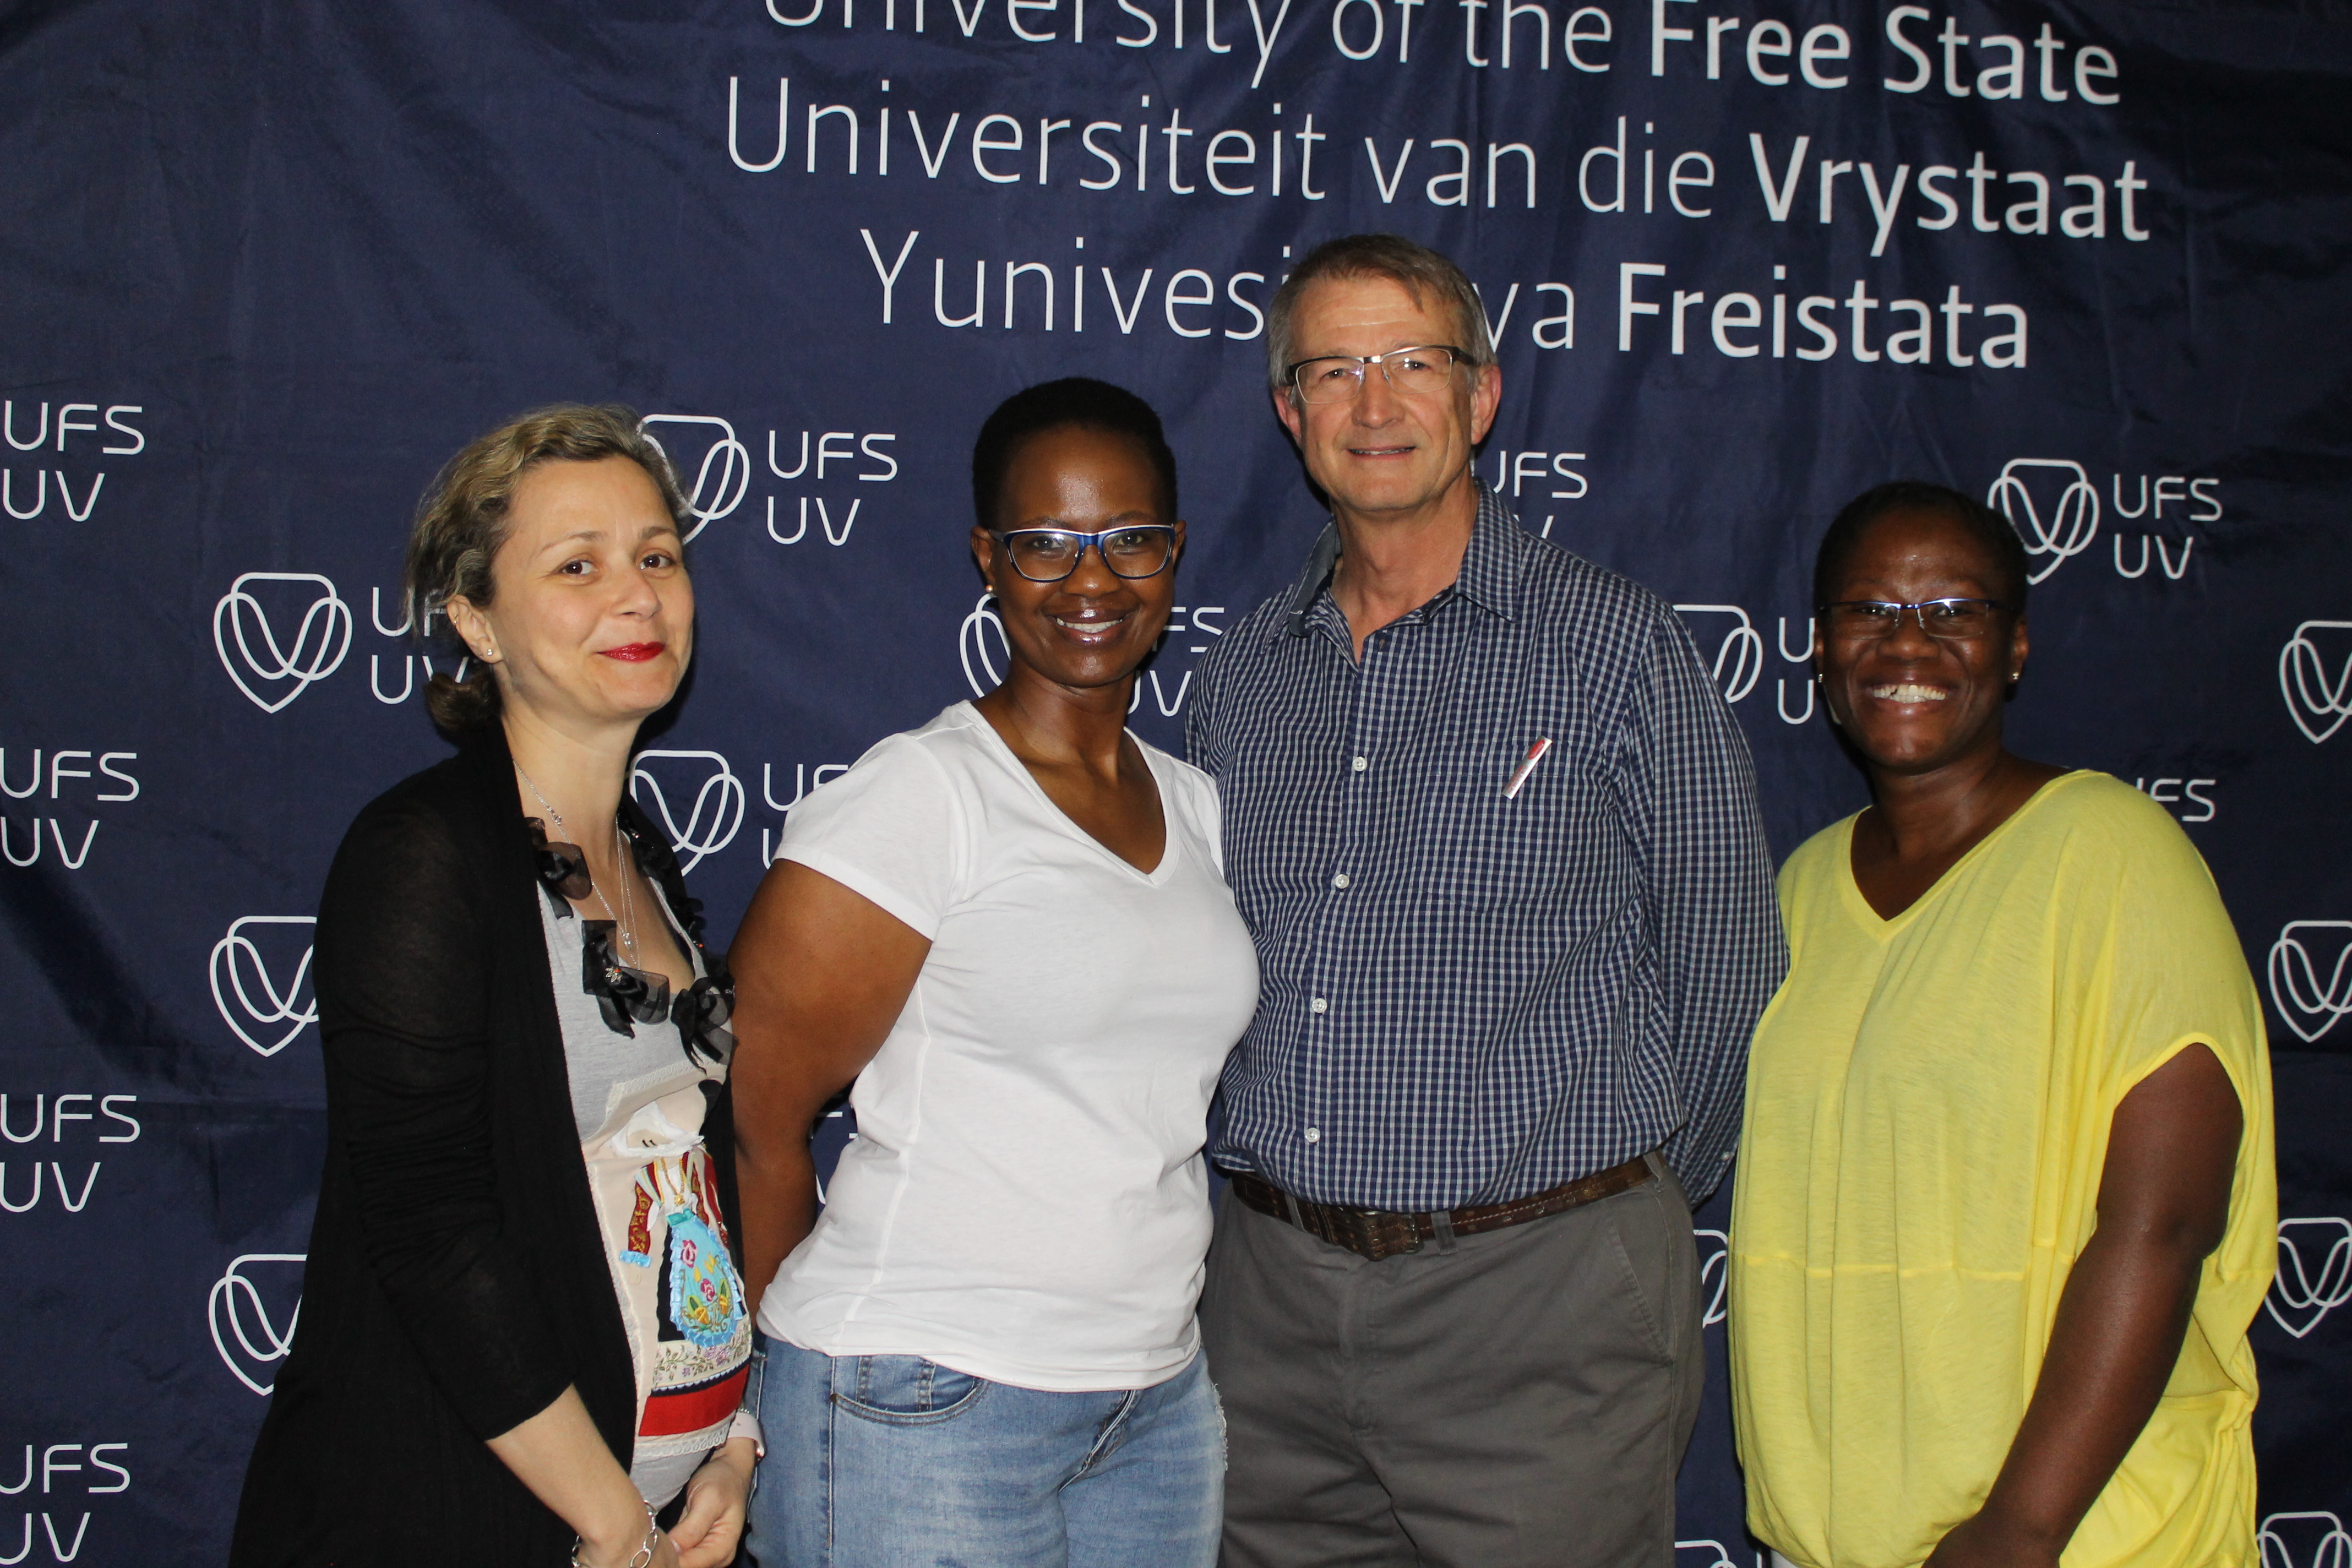 From left; Claudia Loggia, Phinda Nogcinisa, Thomas Stewart, and Phatheka Nyati. Nogcinisa and Nyati are honours students specialising in Human Settlements, who graduated in April this year.